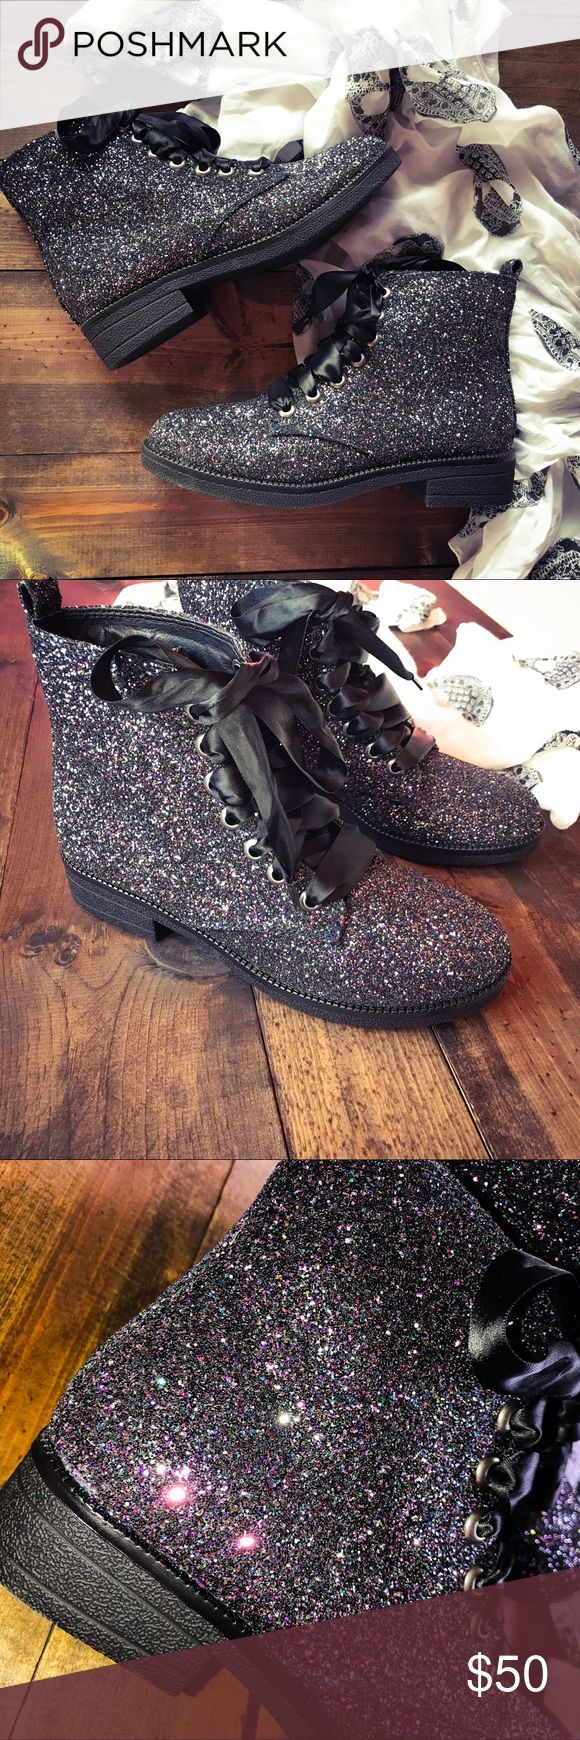 NWOT Dirty Laundry Sparkle Boots Brand New & Never Worn! These boots are super chic--I love this galaxy sparkle glitter, you will definitely stand out! Lace ties No  Dirty Laundry Shoes Ankle Boots & Booties